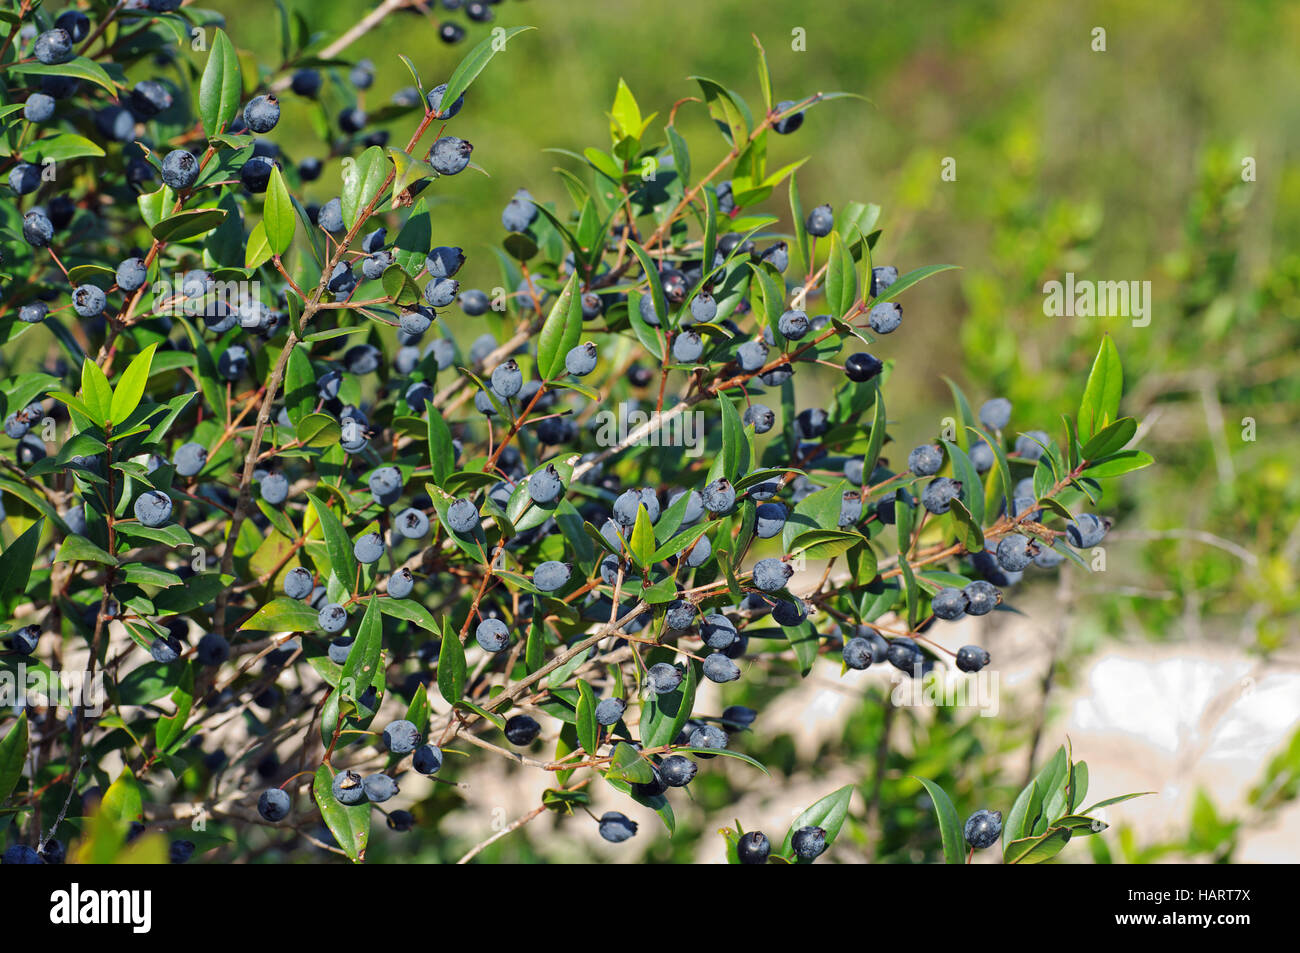 This is Myrtus communis, the Common myrtle with fruits (berries), family Myrtaceae - Stock Image